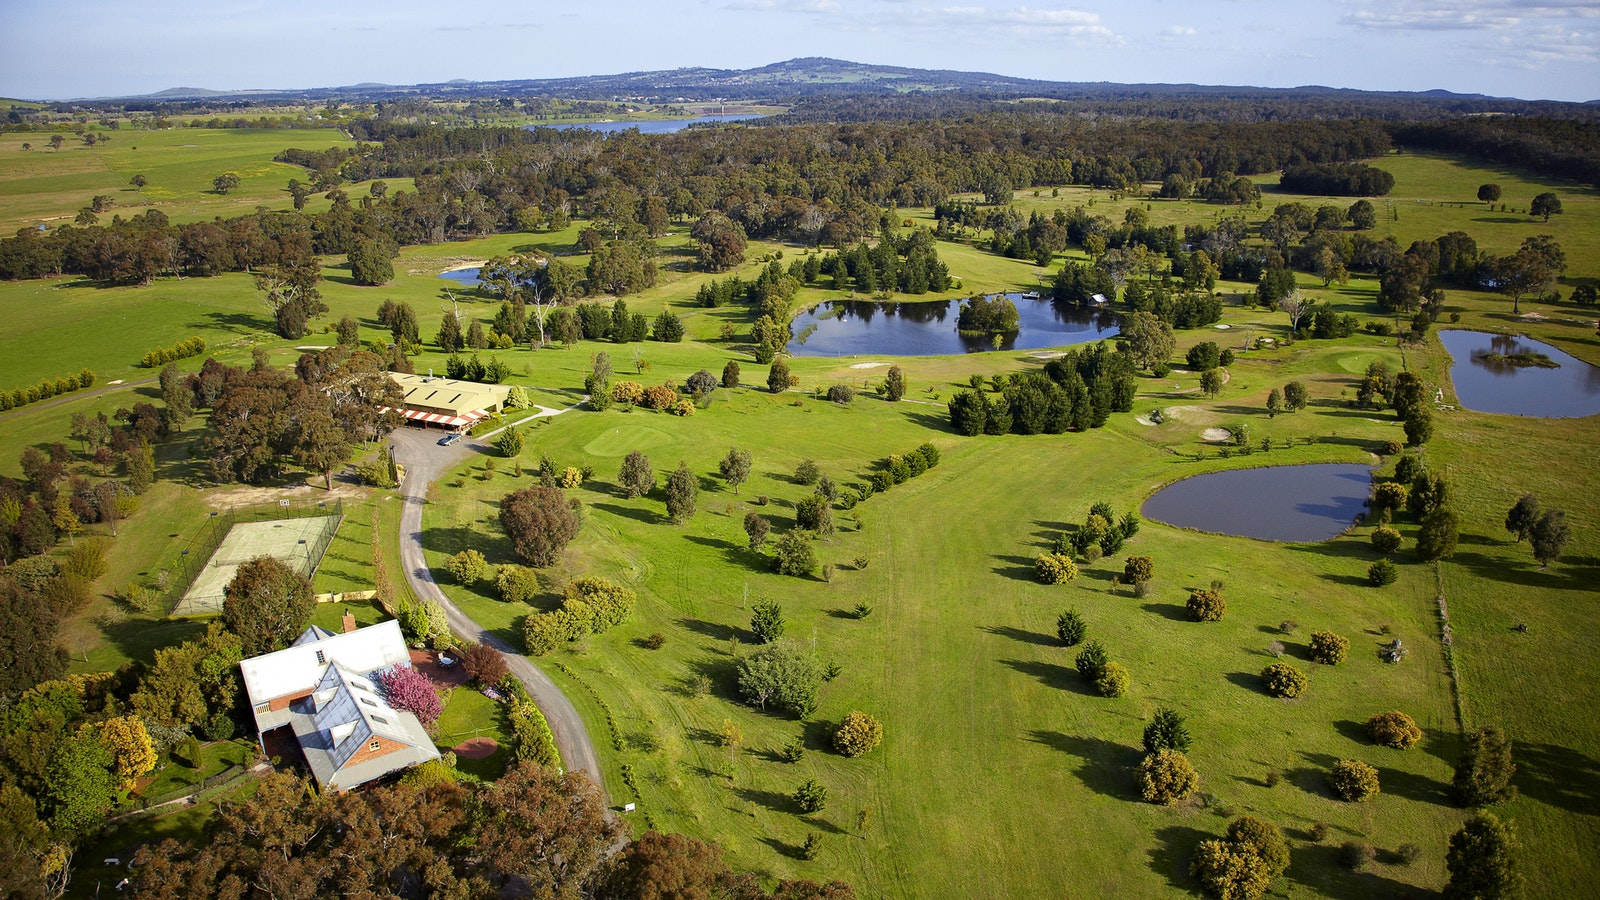 Aerial view across the 53 acre property